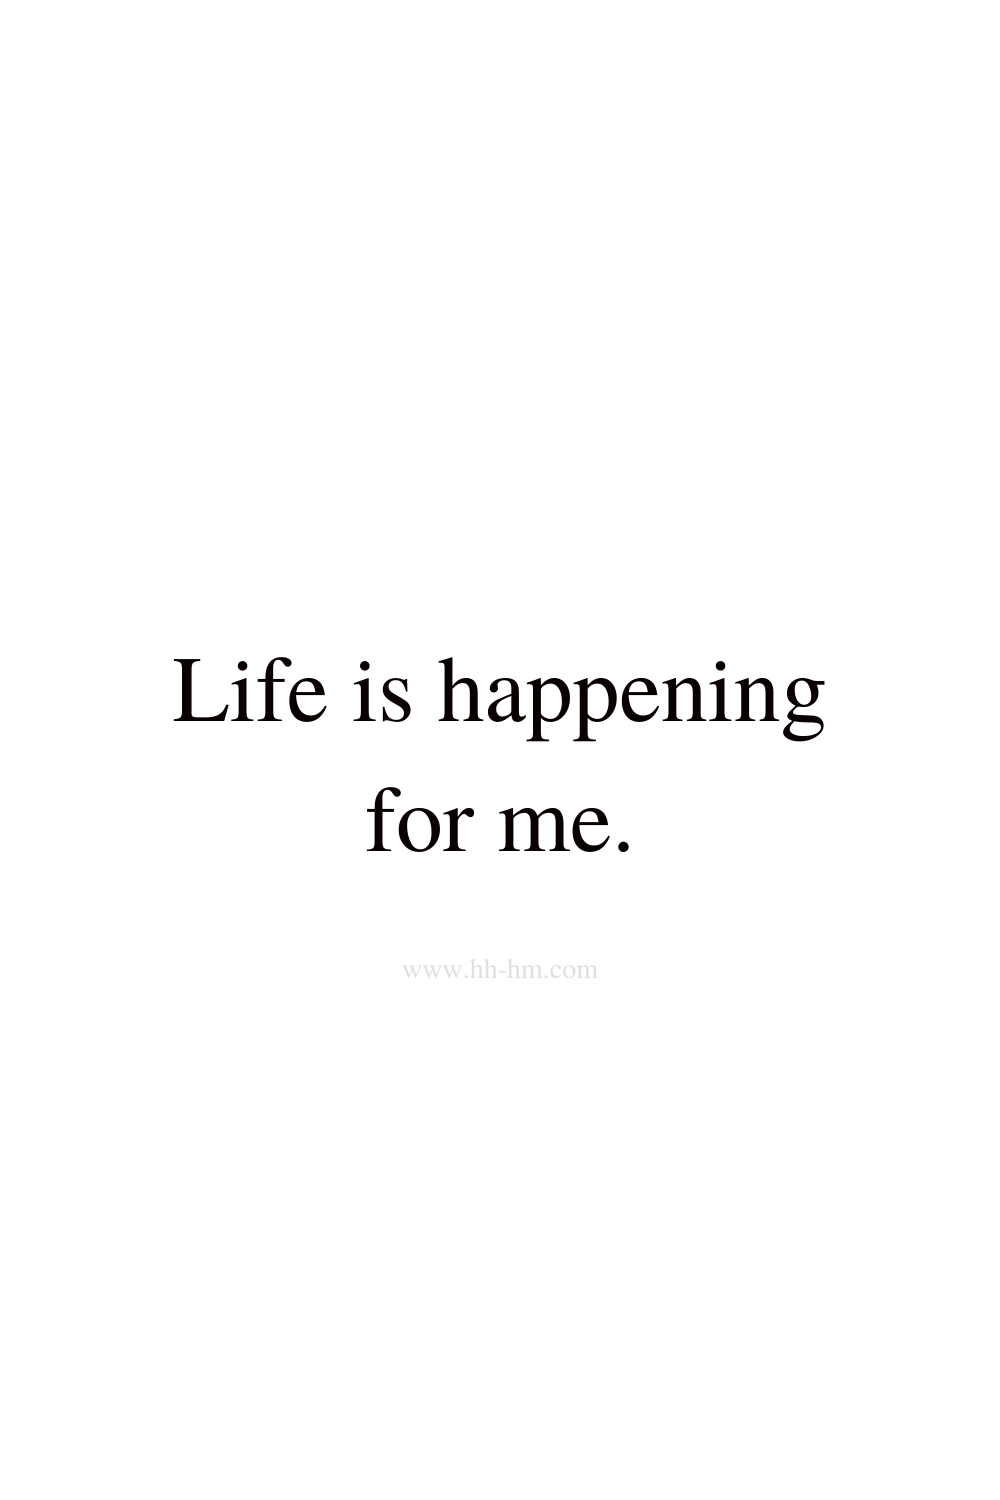 Life is happening for me - morning affirmations